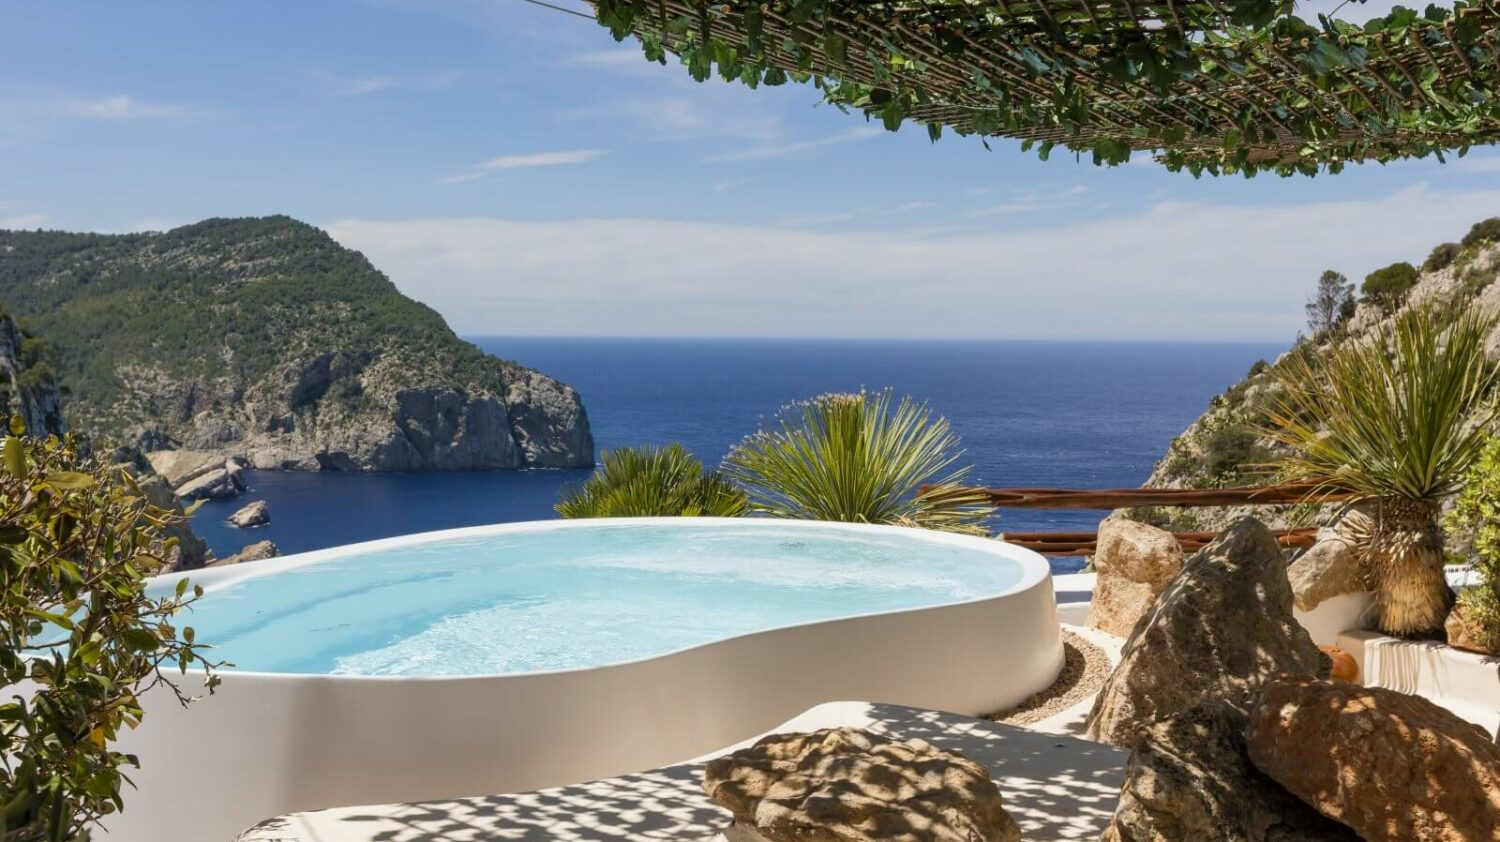 pool with a view-hacienda na xamena ibiza spain